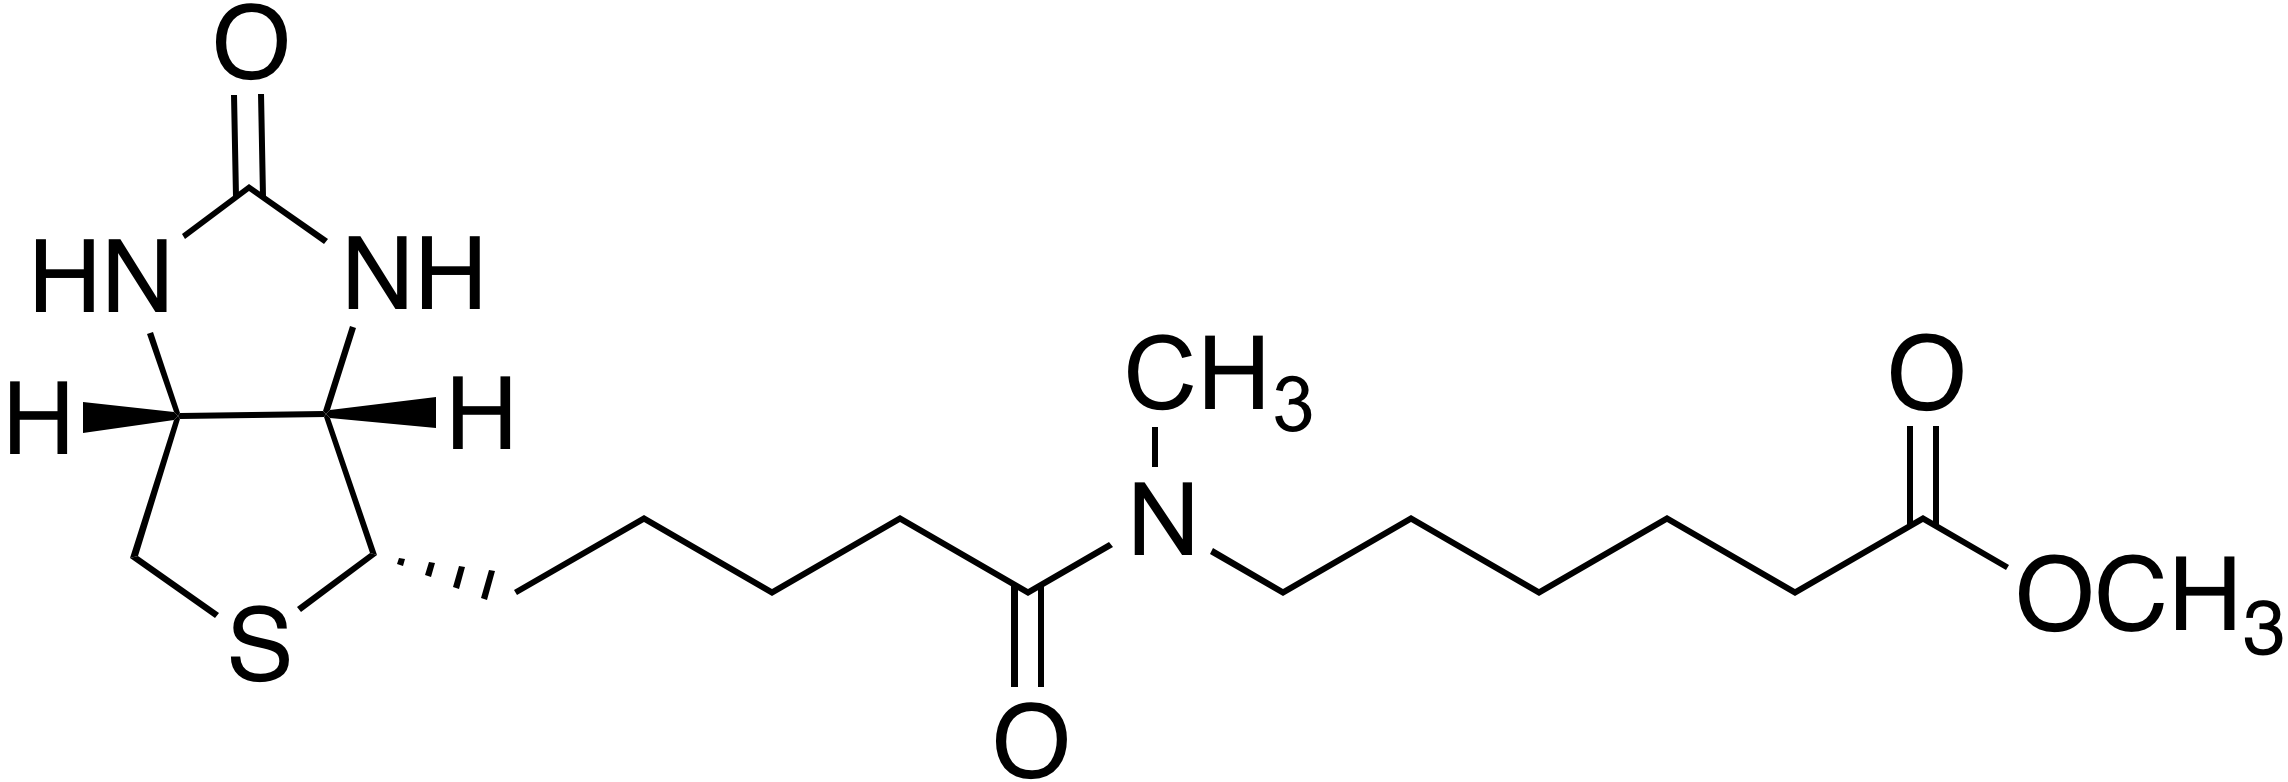 (N-Methyl-N-biotinyl)-6-aminohexanoic acid methyl ester